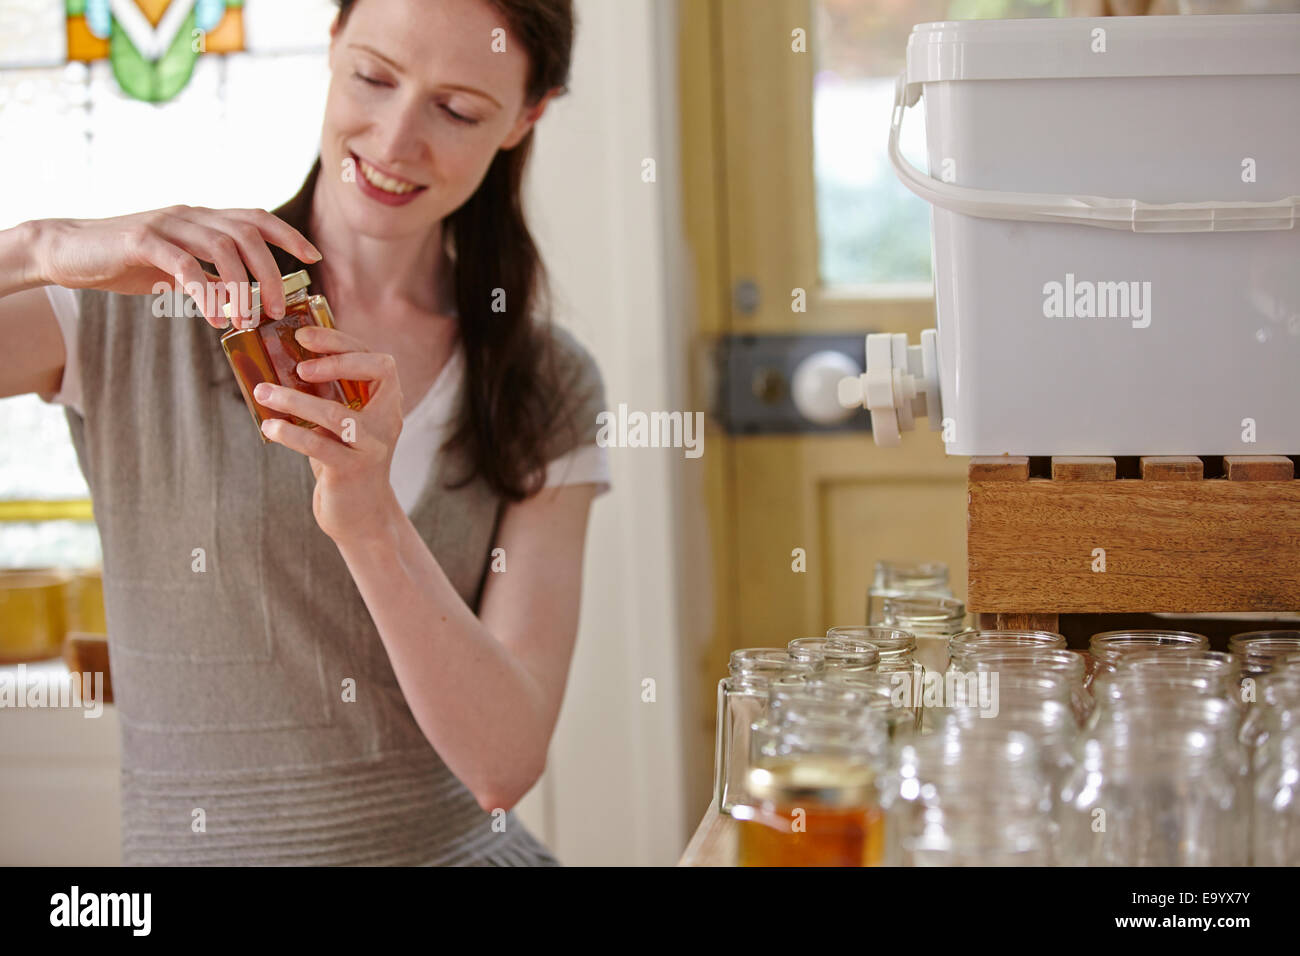 Female beekeeper in kitchen, bottling filtered honey from beehive - Stock Image